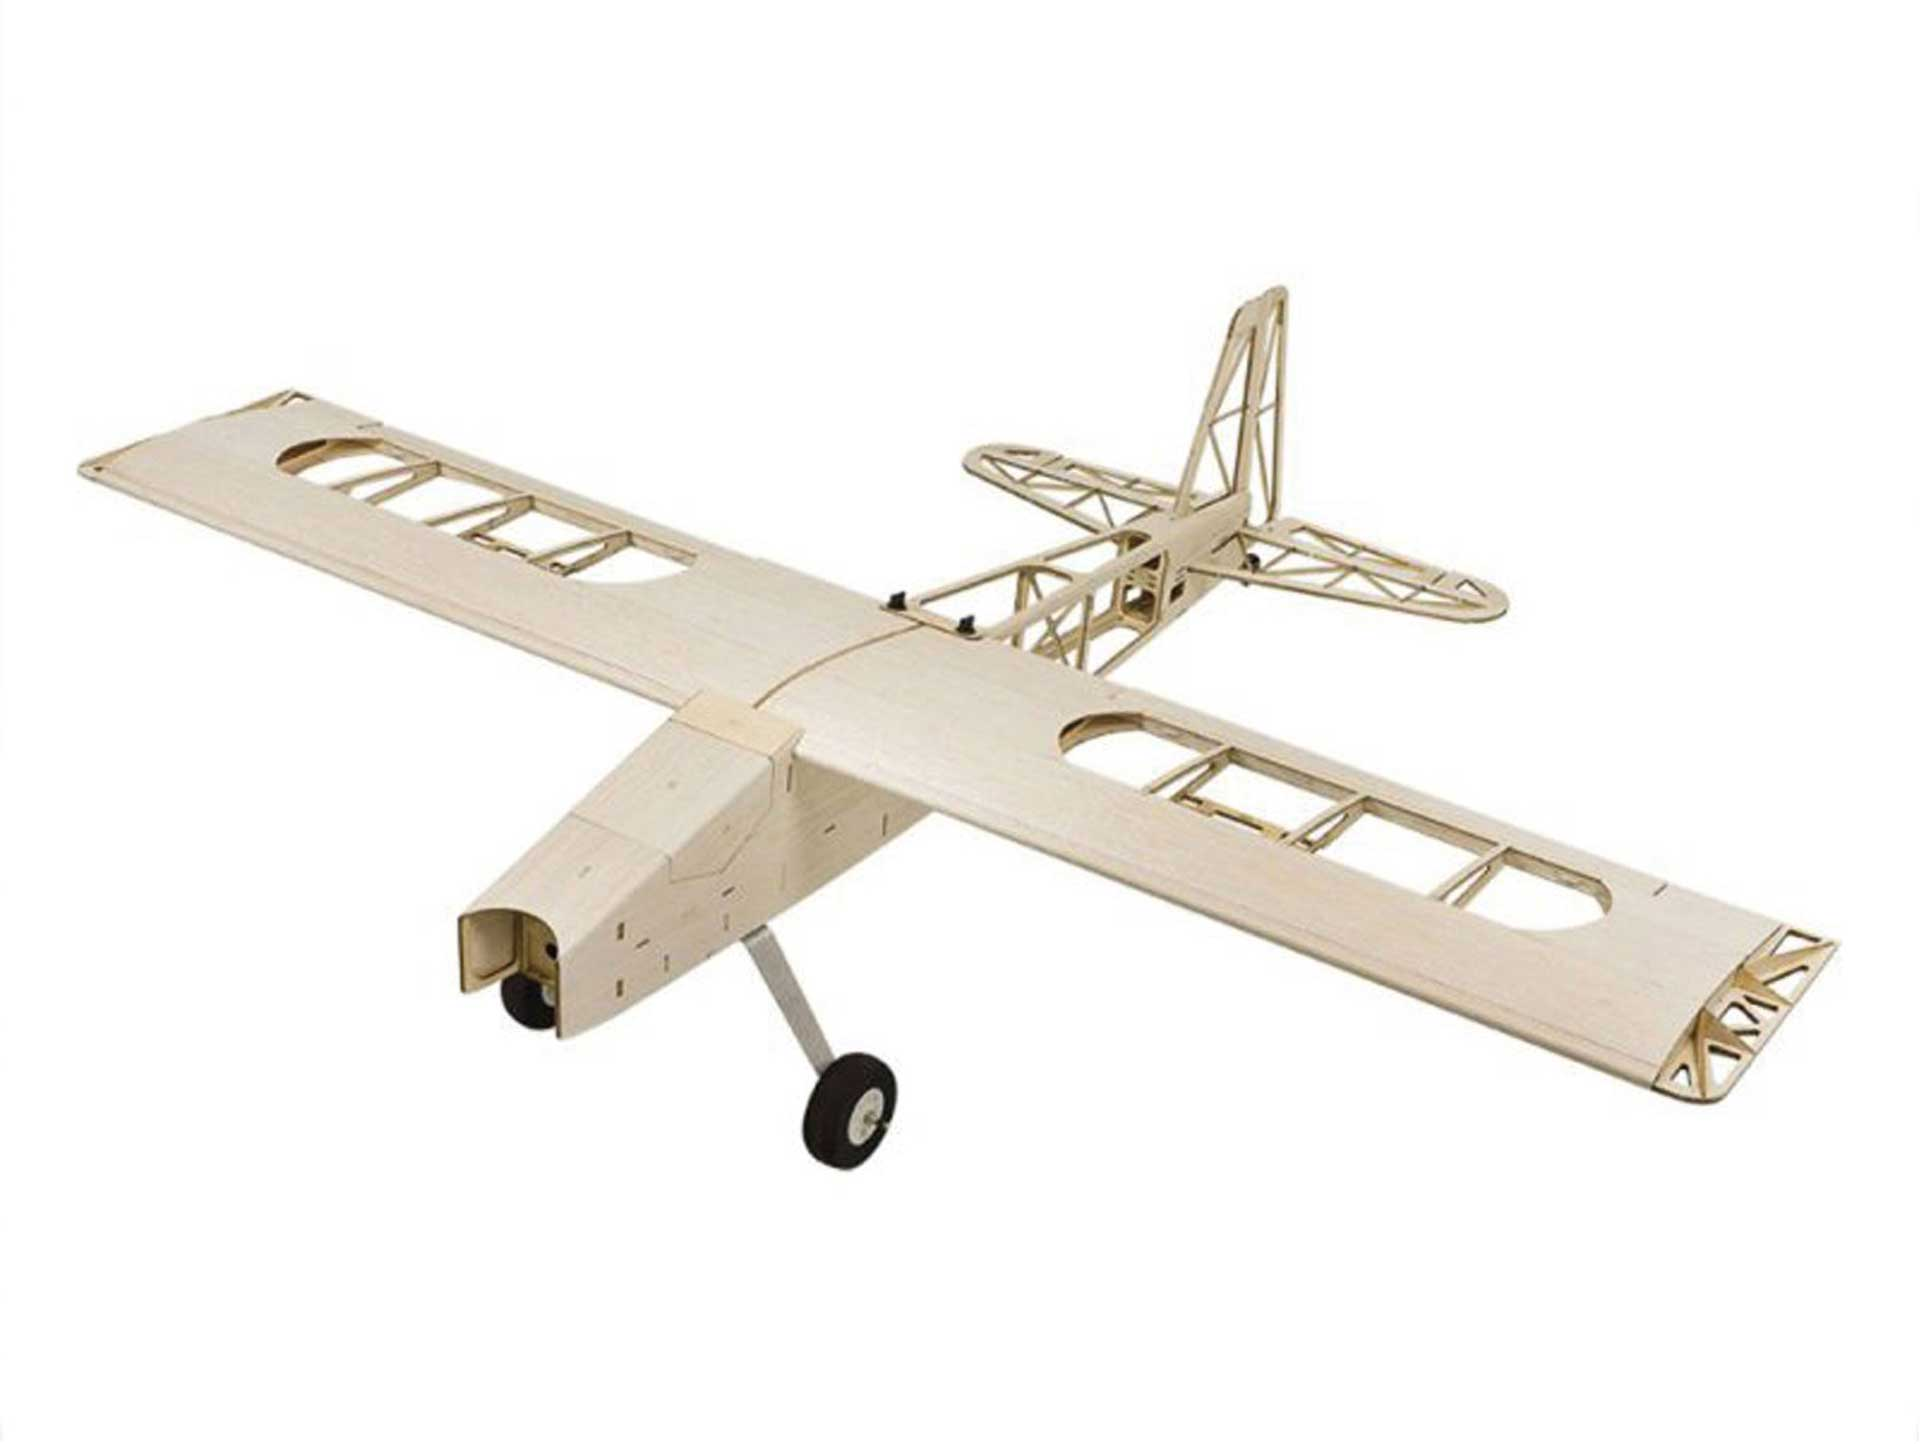 Pichler E Trainer wooden kit 1,2m